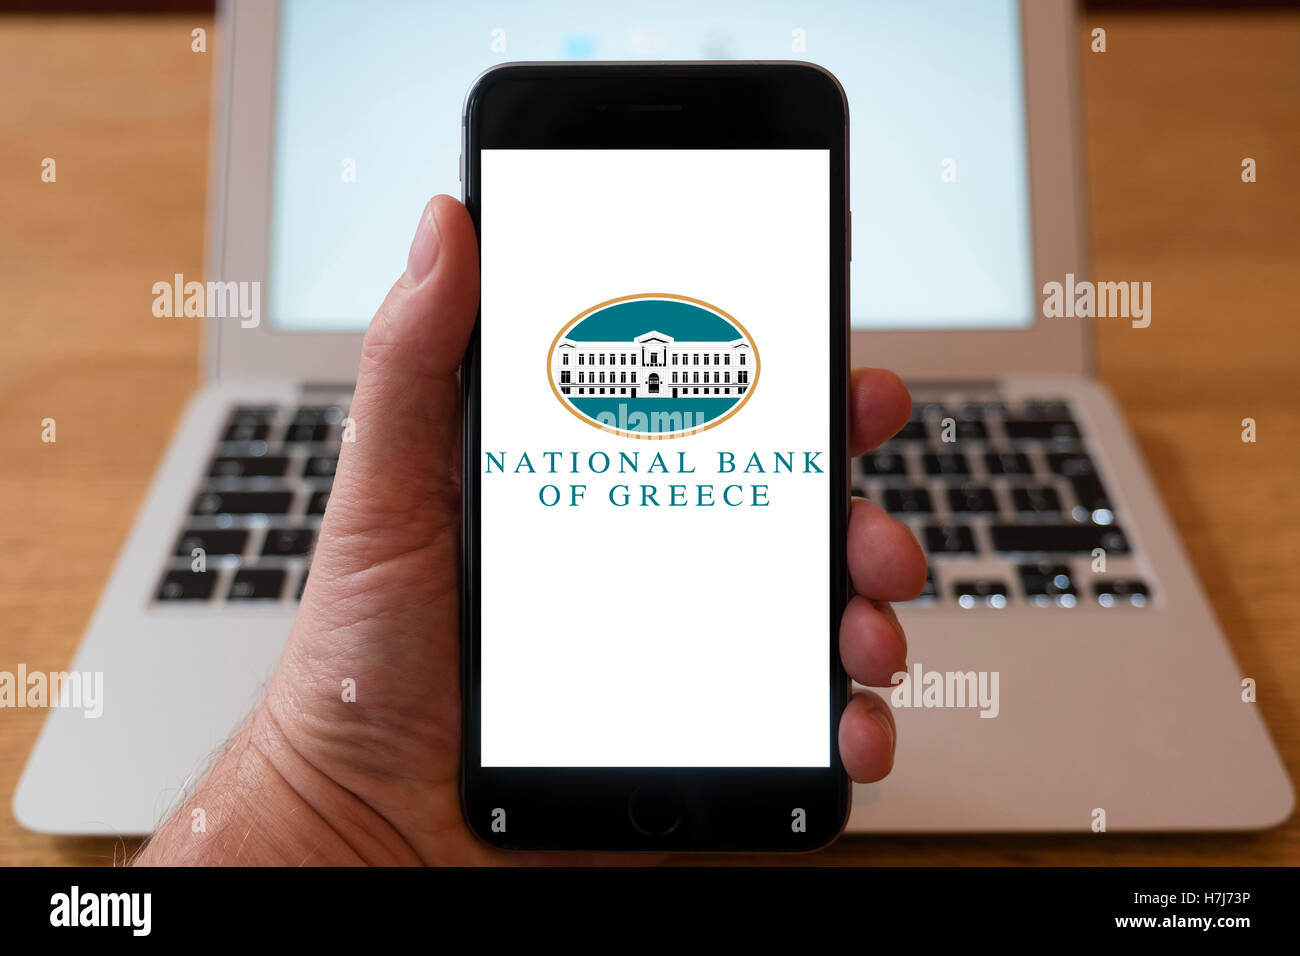 Using iPhone smartphone to display logo of National Bank of Greece - Stock Image